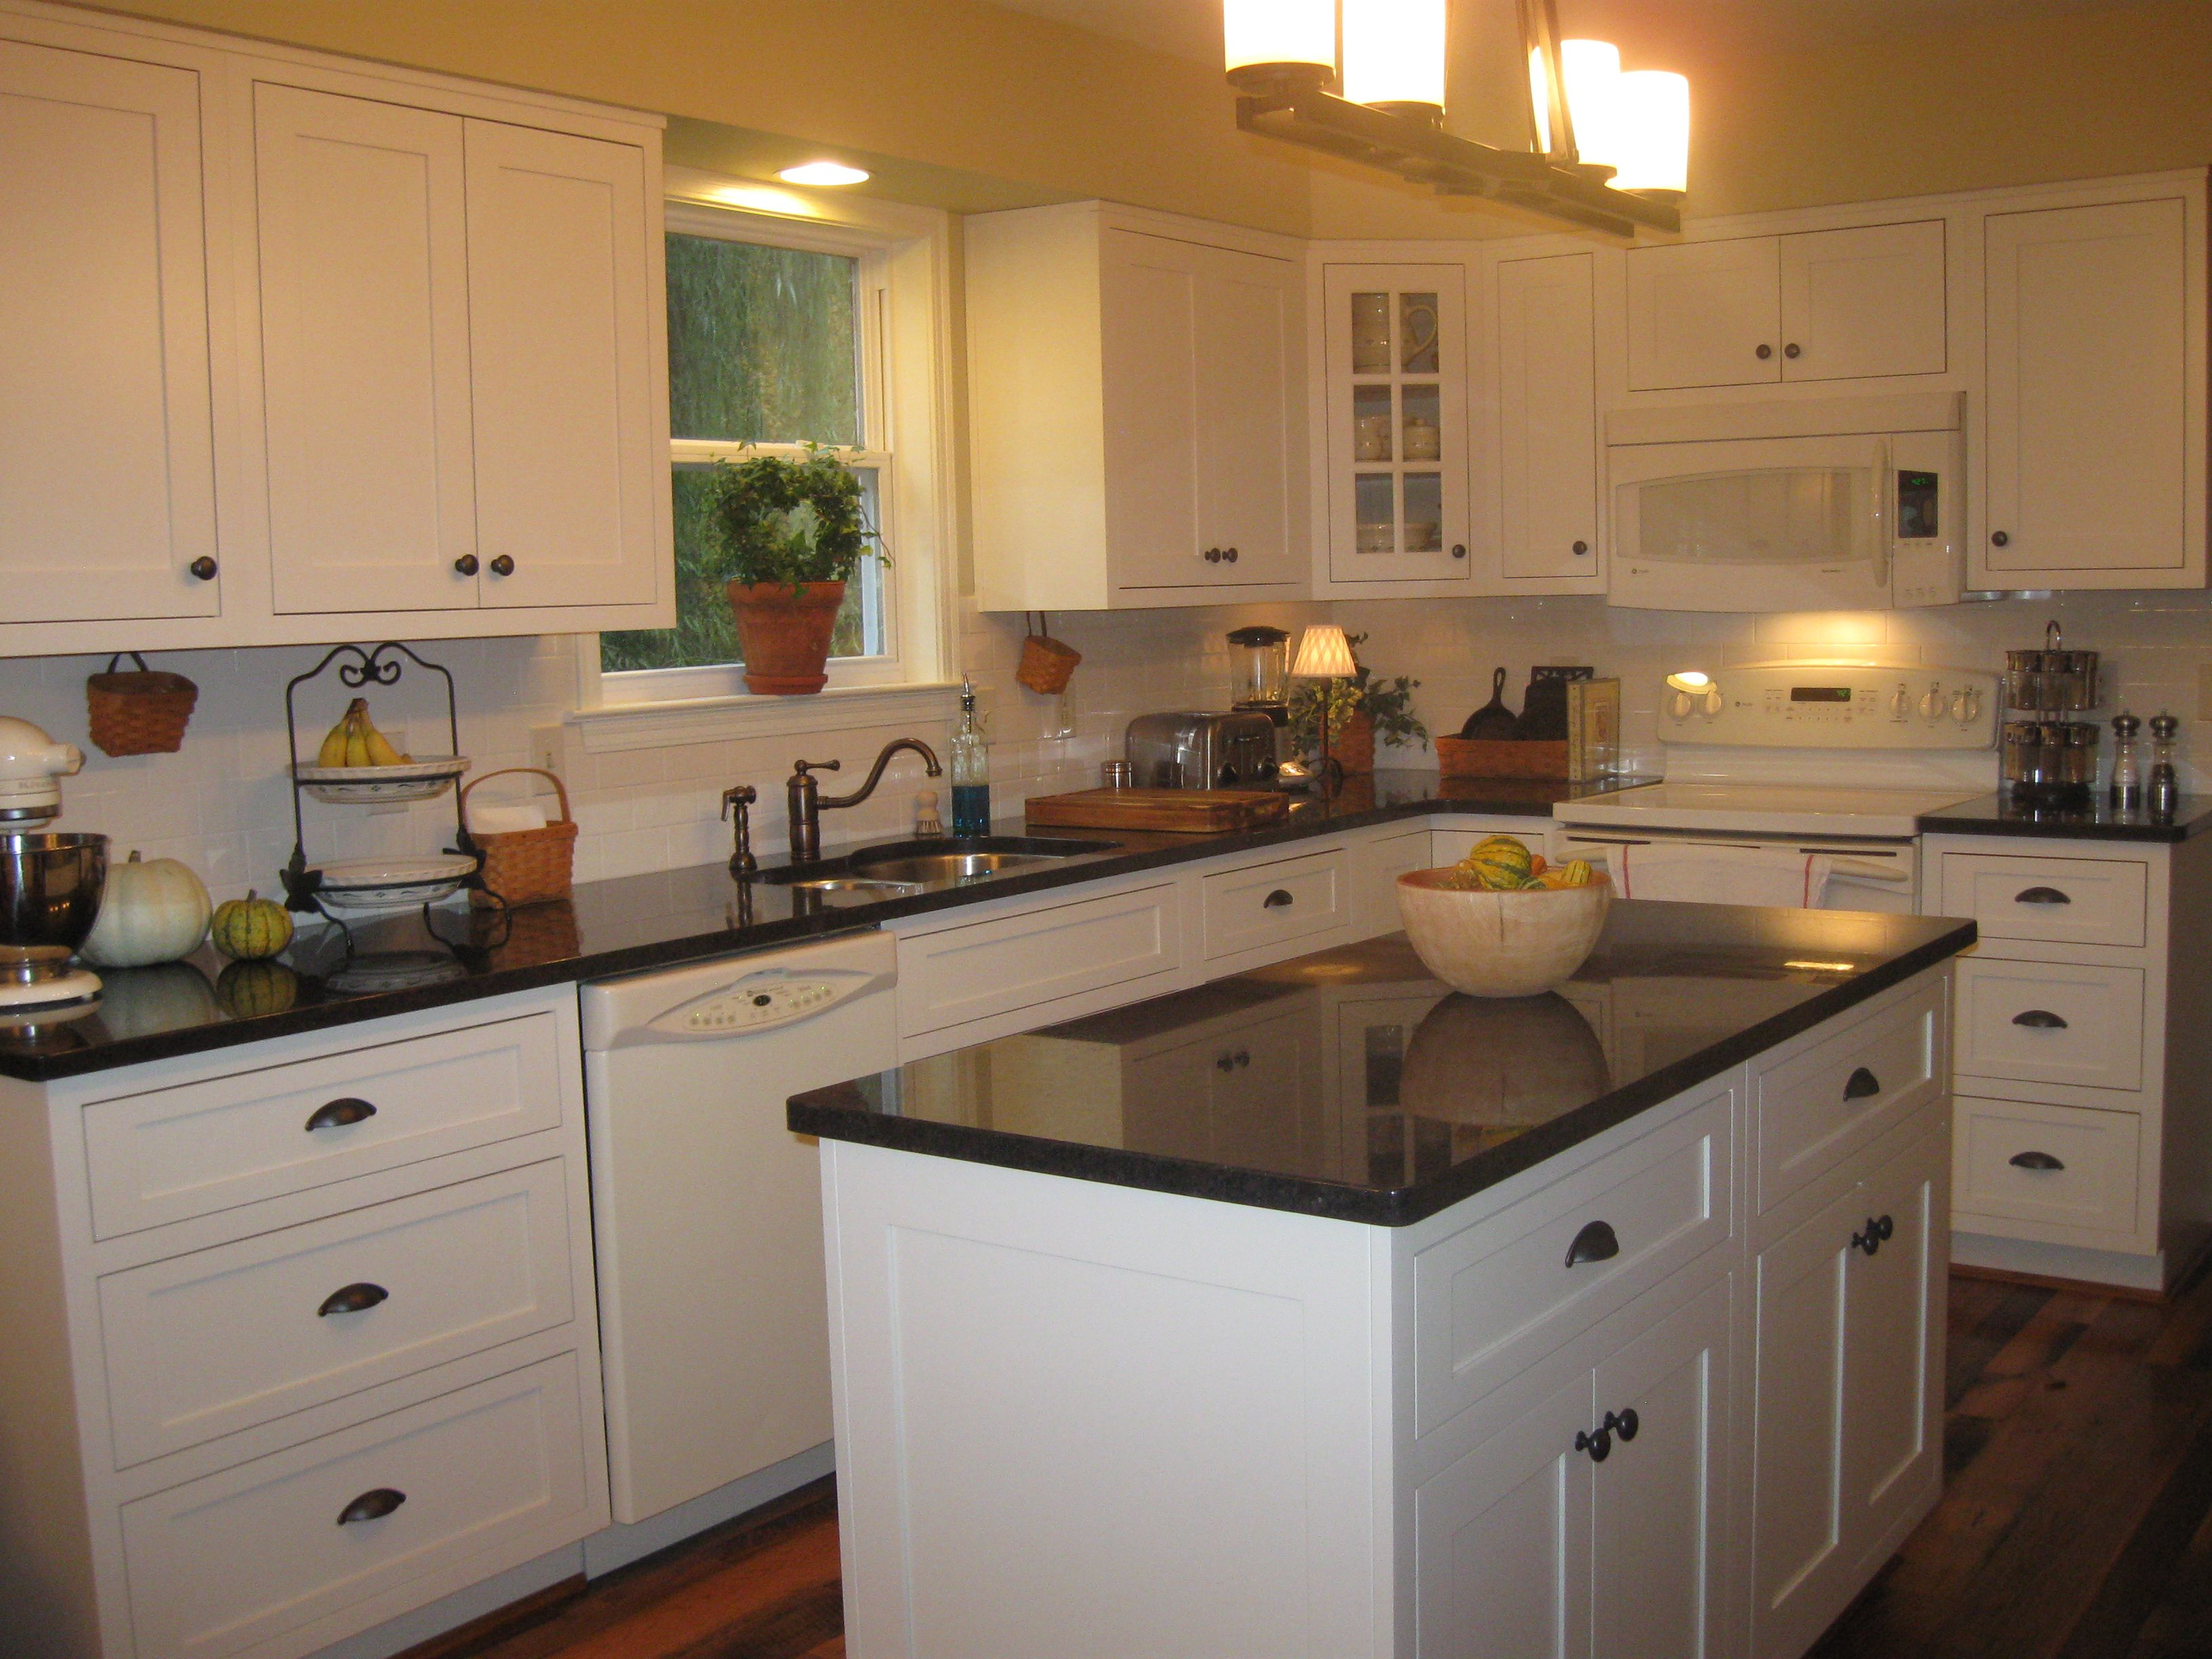 Shiloh Cabinets With Inset Doors In Soft White Coffee Brown Granite Countertops